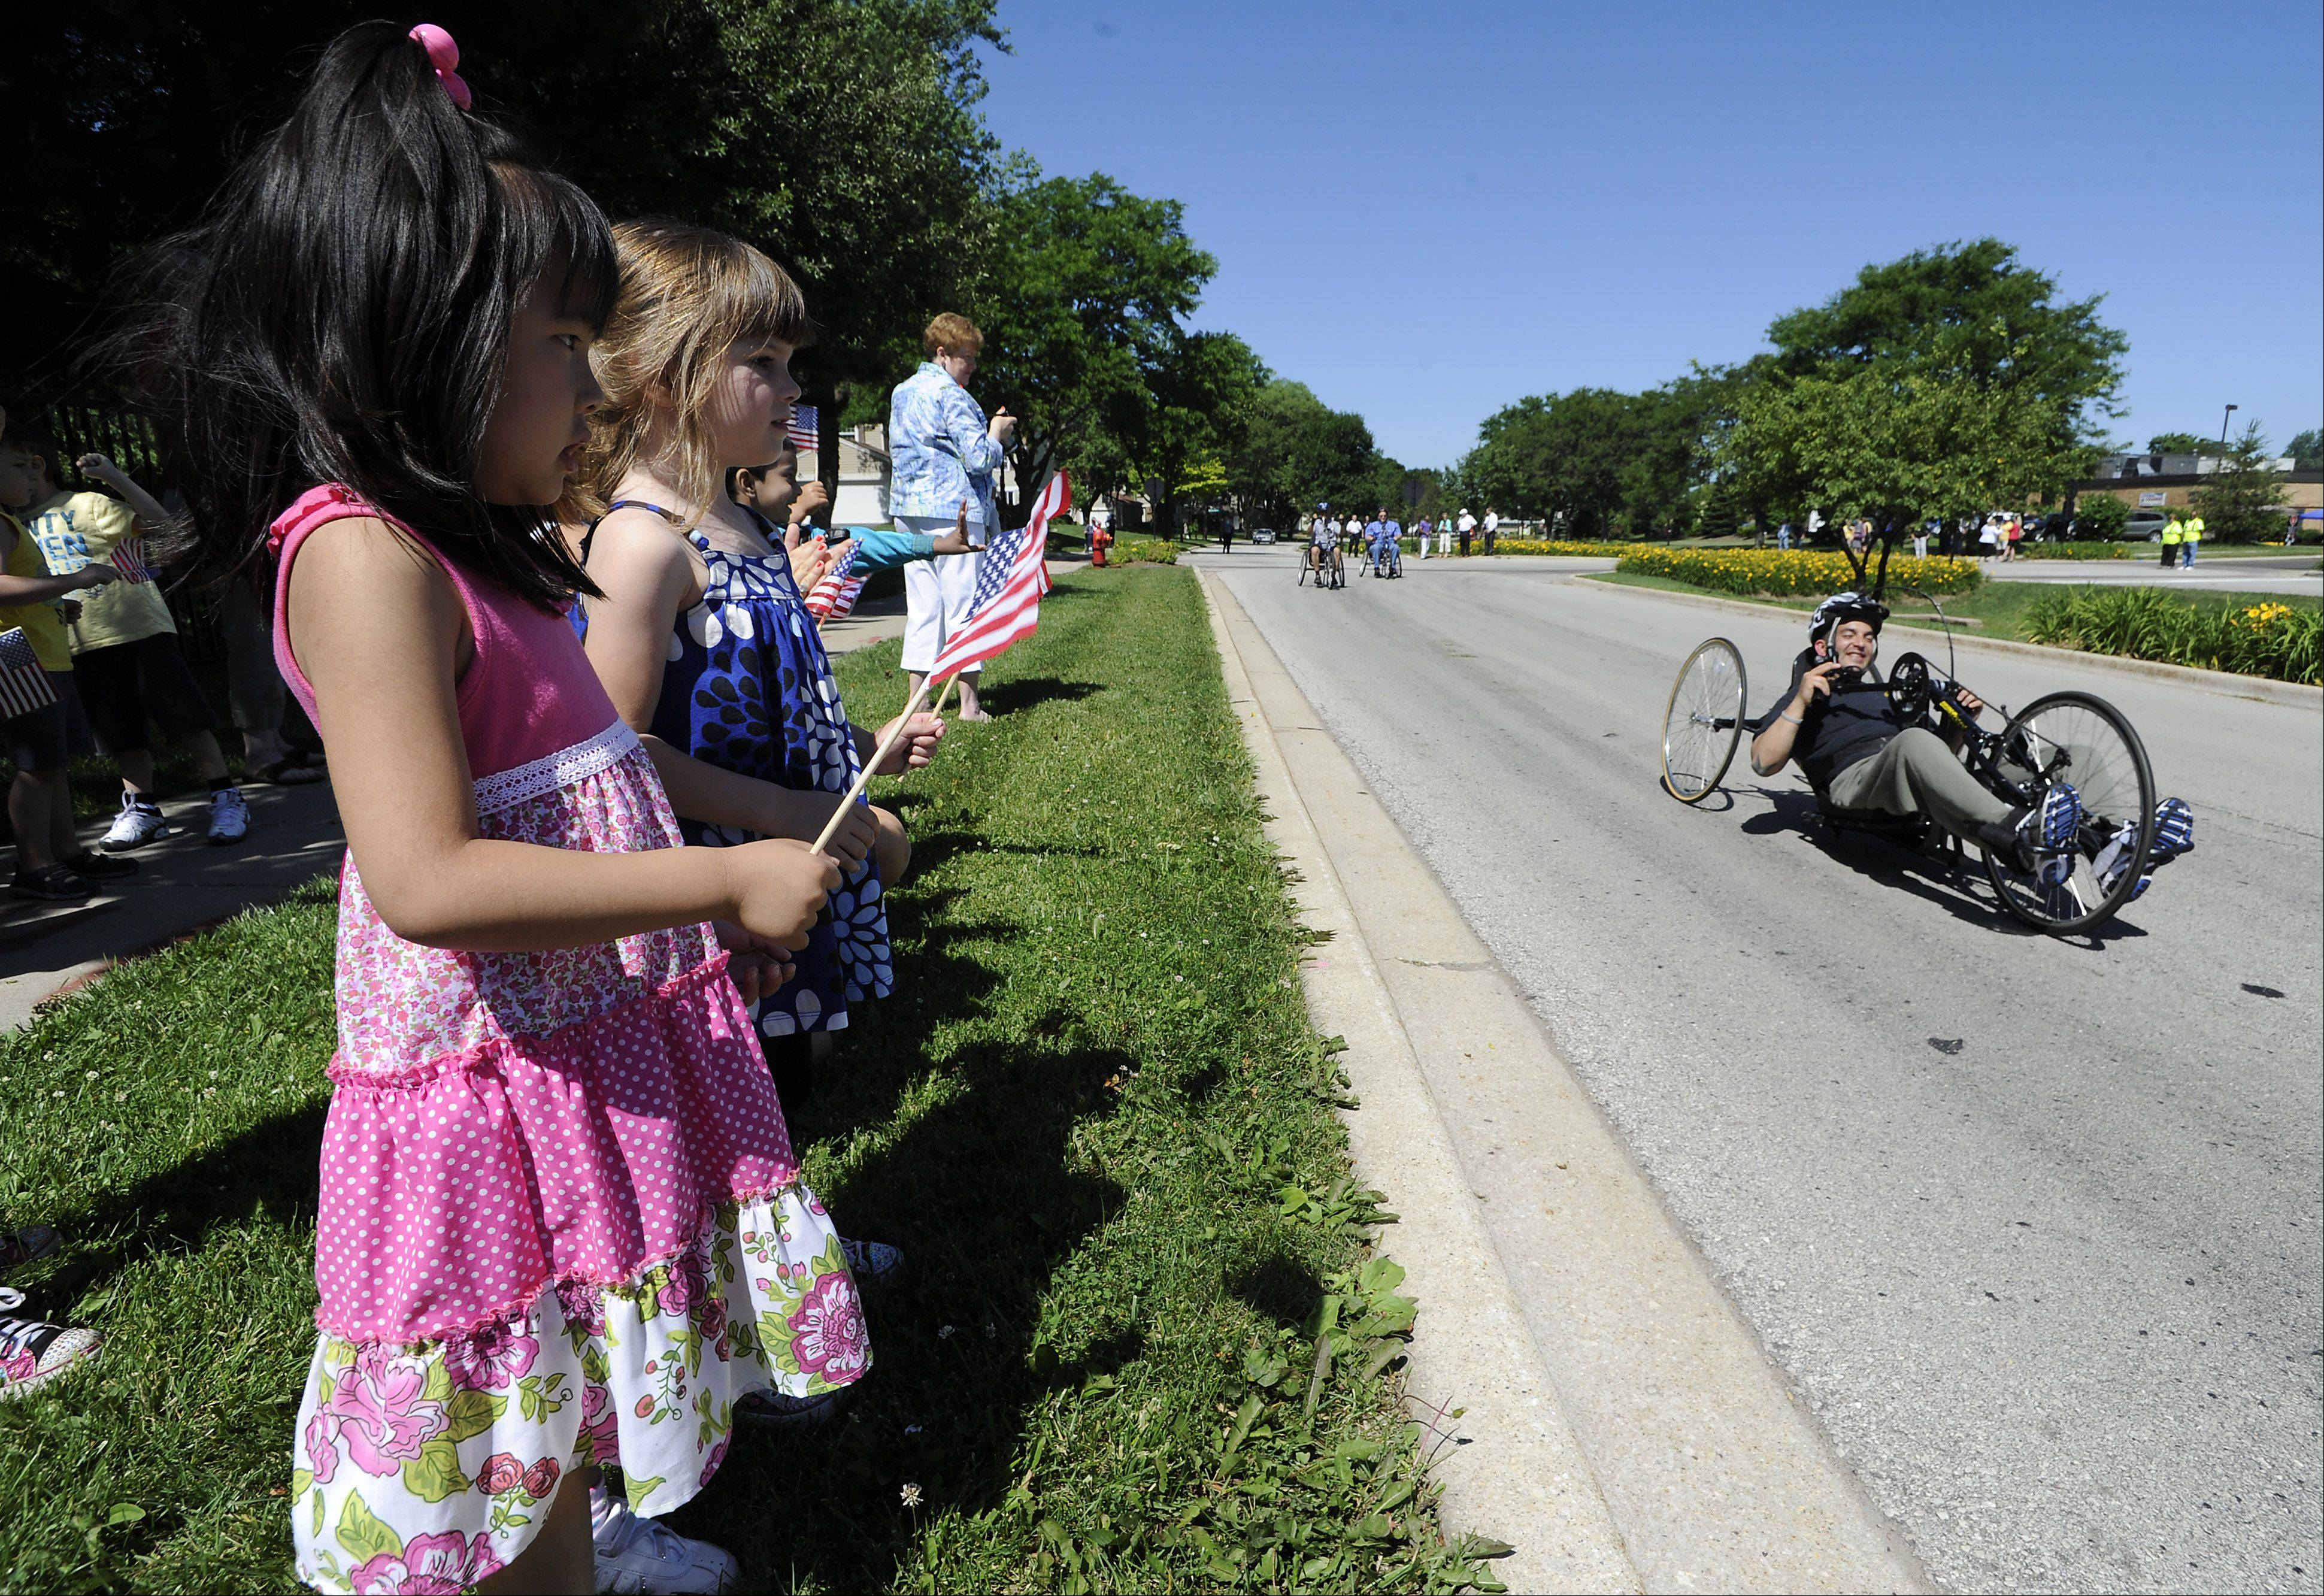 Alberto Velasco, 31, of Schaumburg, one of the athletes that will participate in the handcycle race in the upcoming Tour of Elk Grove, gets a start in the mini-race with cheers from Rinka Yamakawa, 5, and Madeline Aldrich, 4, of an Elk Grove Village Park District preschool camp.